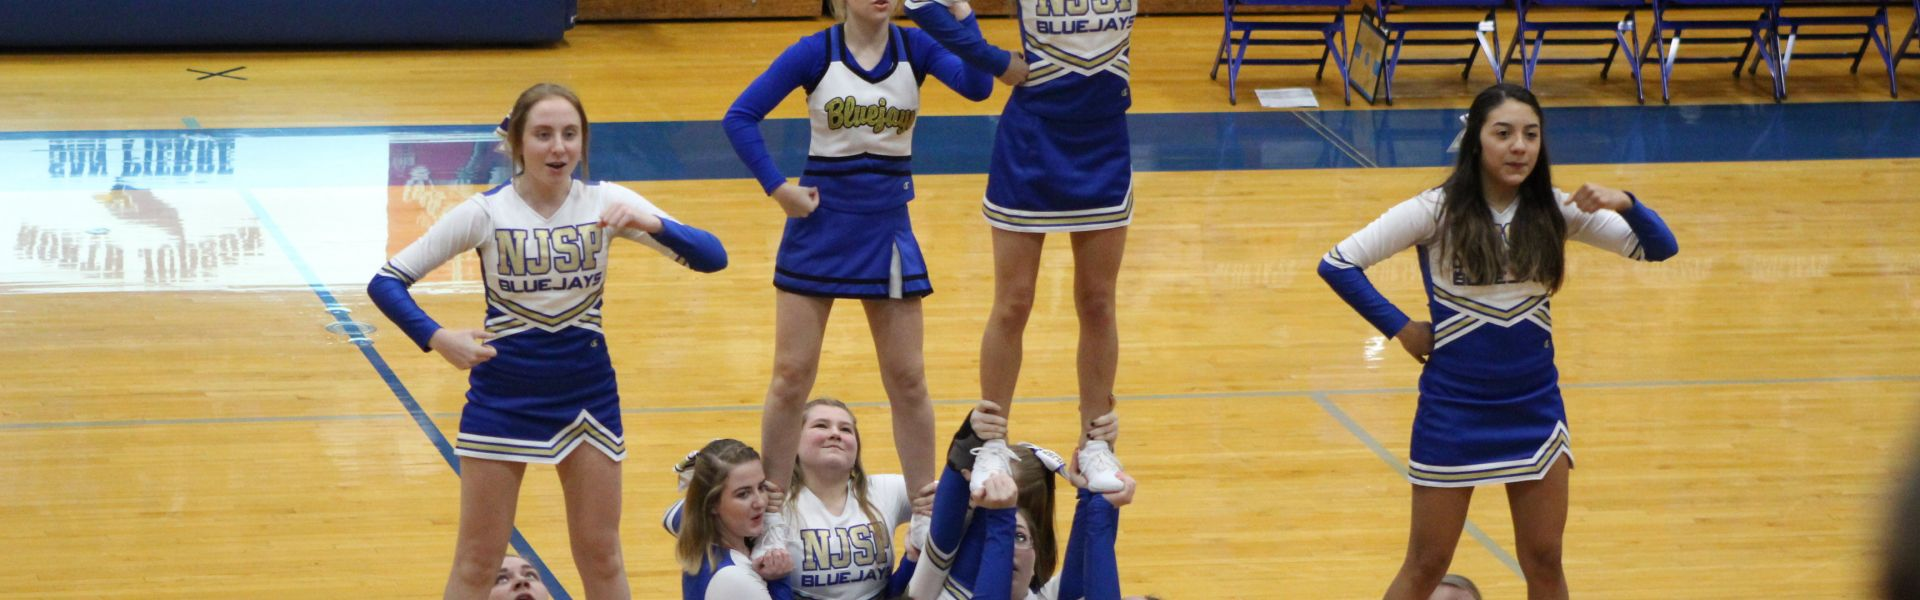 Blue Jay Cheerleading